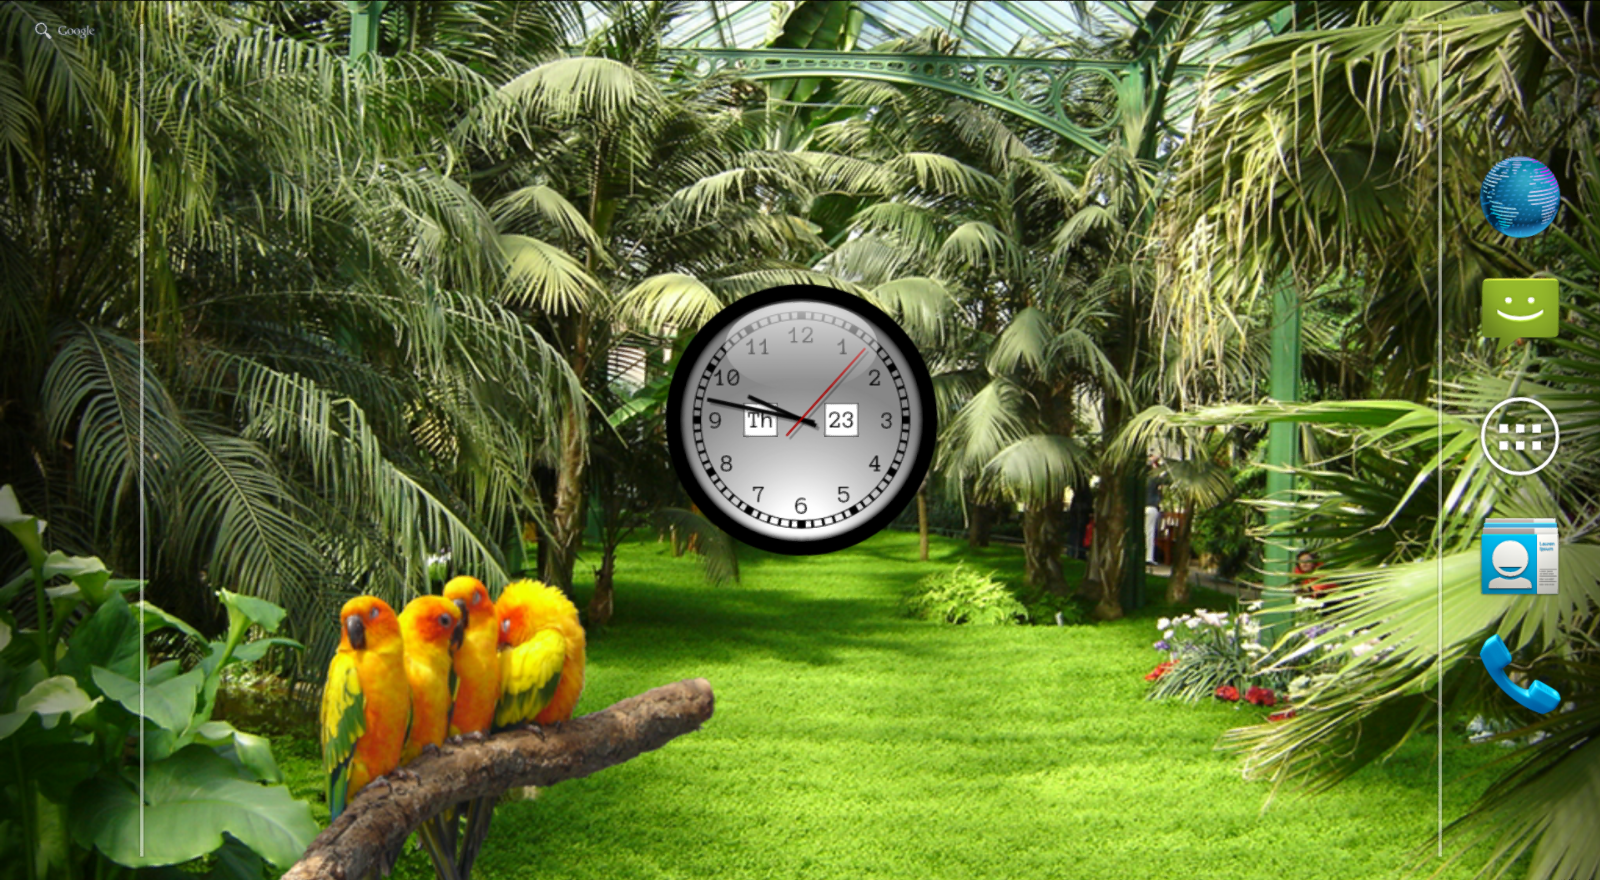 Clock Live Wallpaper Free Android Apps on Google Play